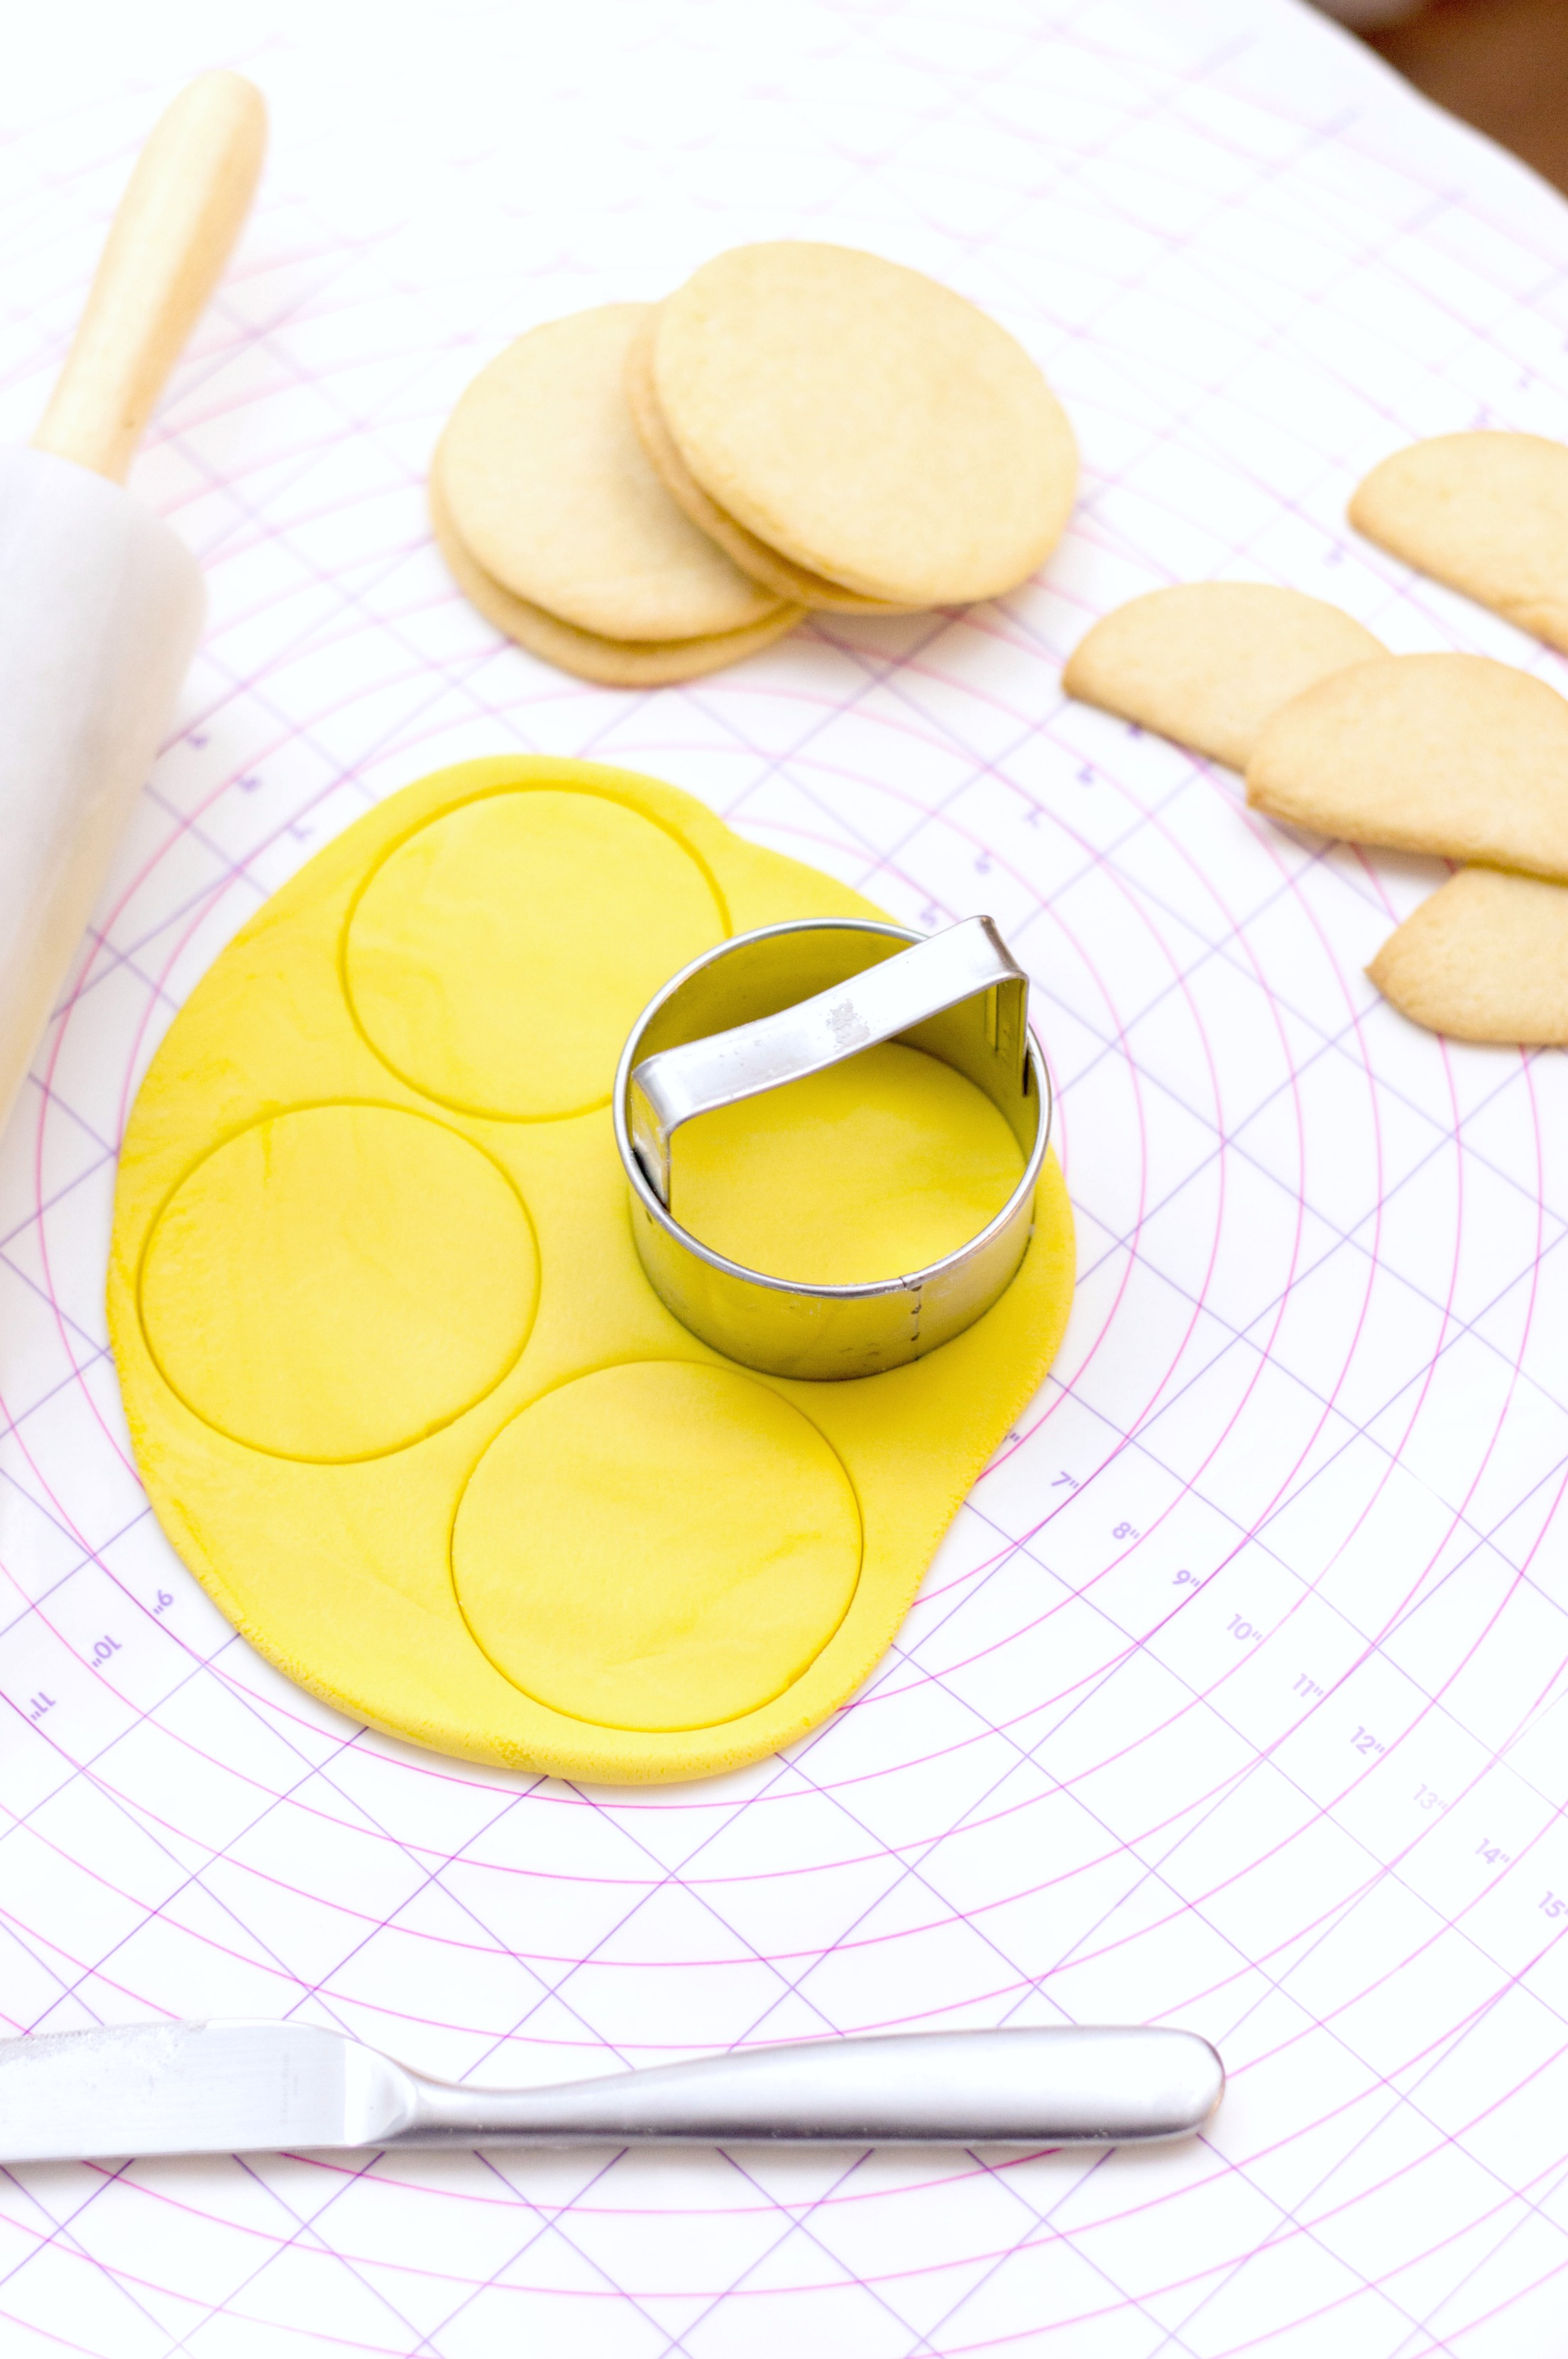 Yellow fondant is rolled out and cookies are piled up. Circles are being cut out with a cookie cutter to place on top of cookies.